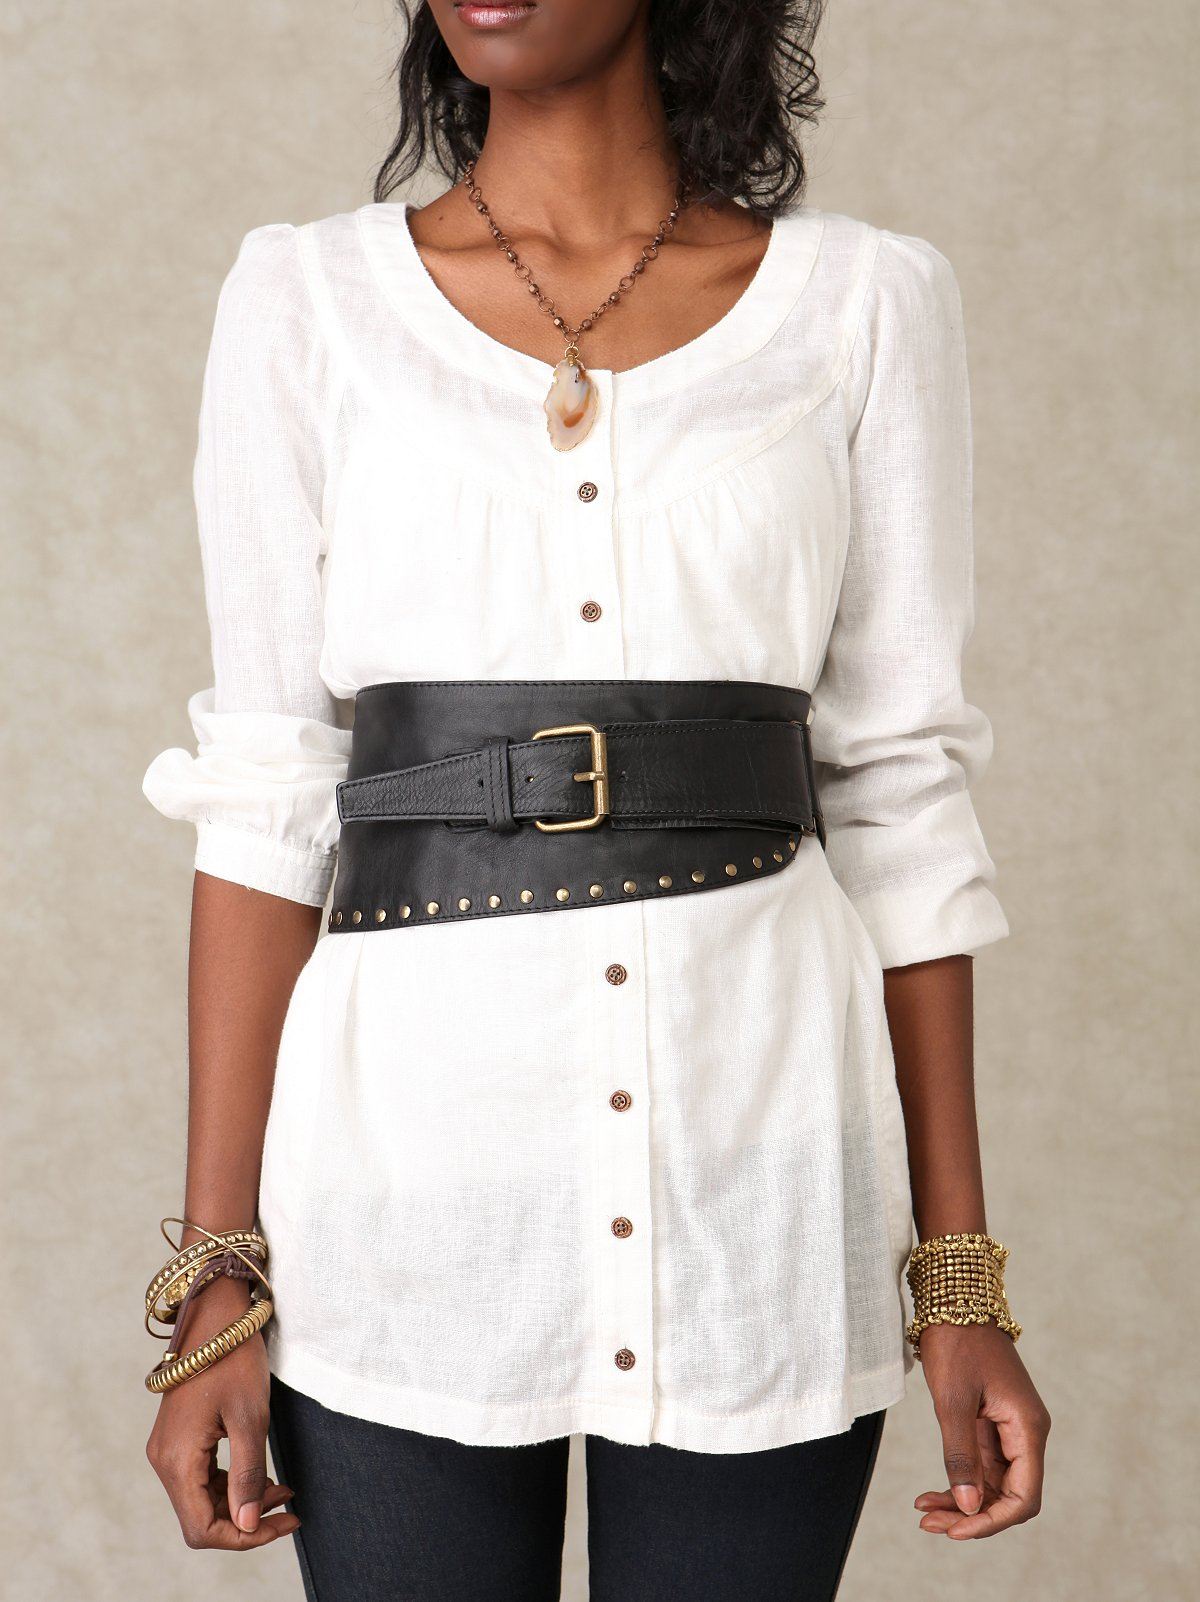 Antionette Buckled Corset Waist Belt